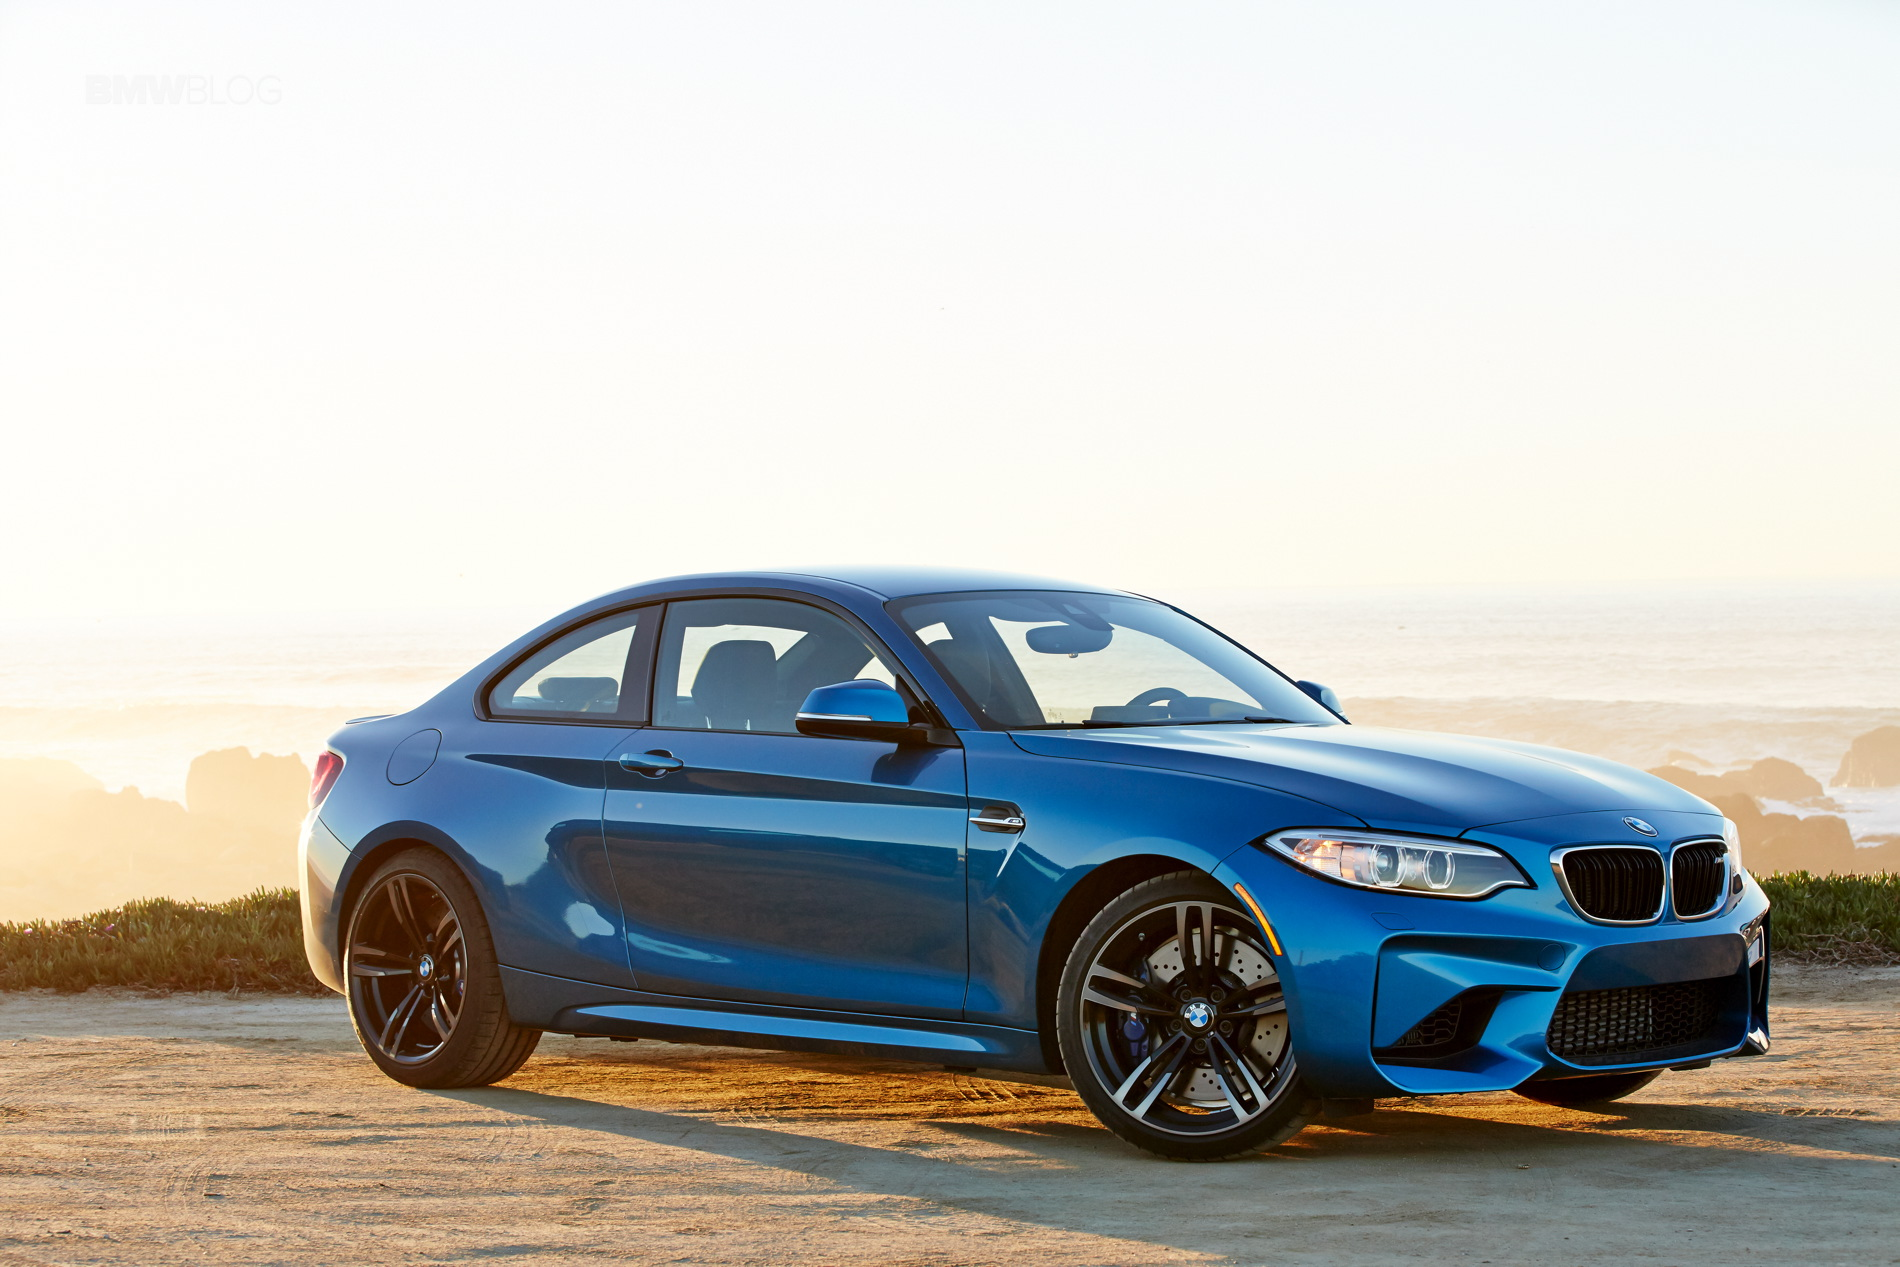 BMW M2 high quality wallpapers 211